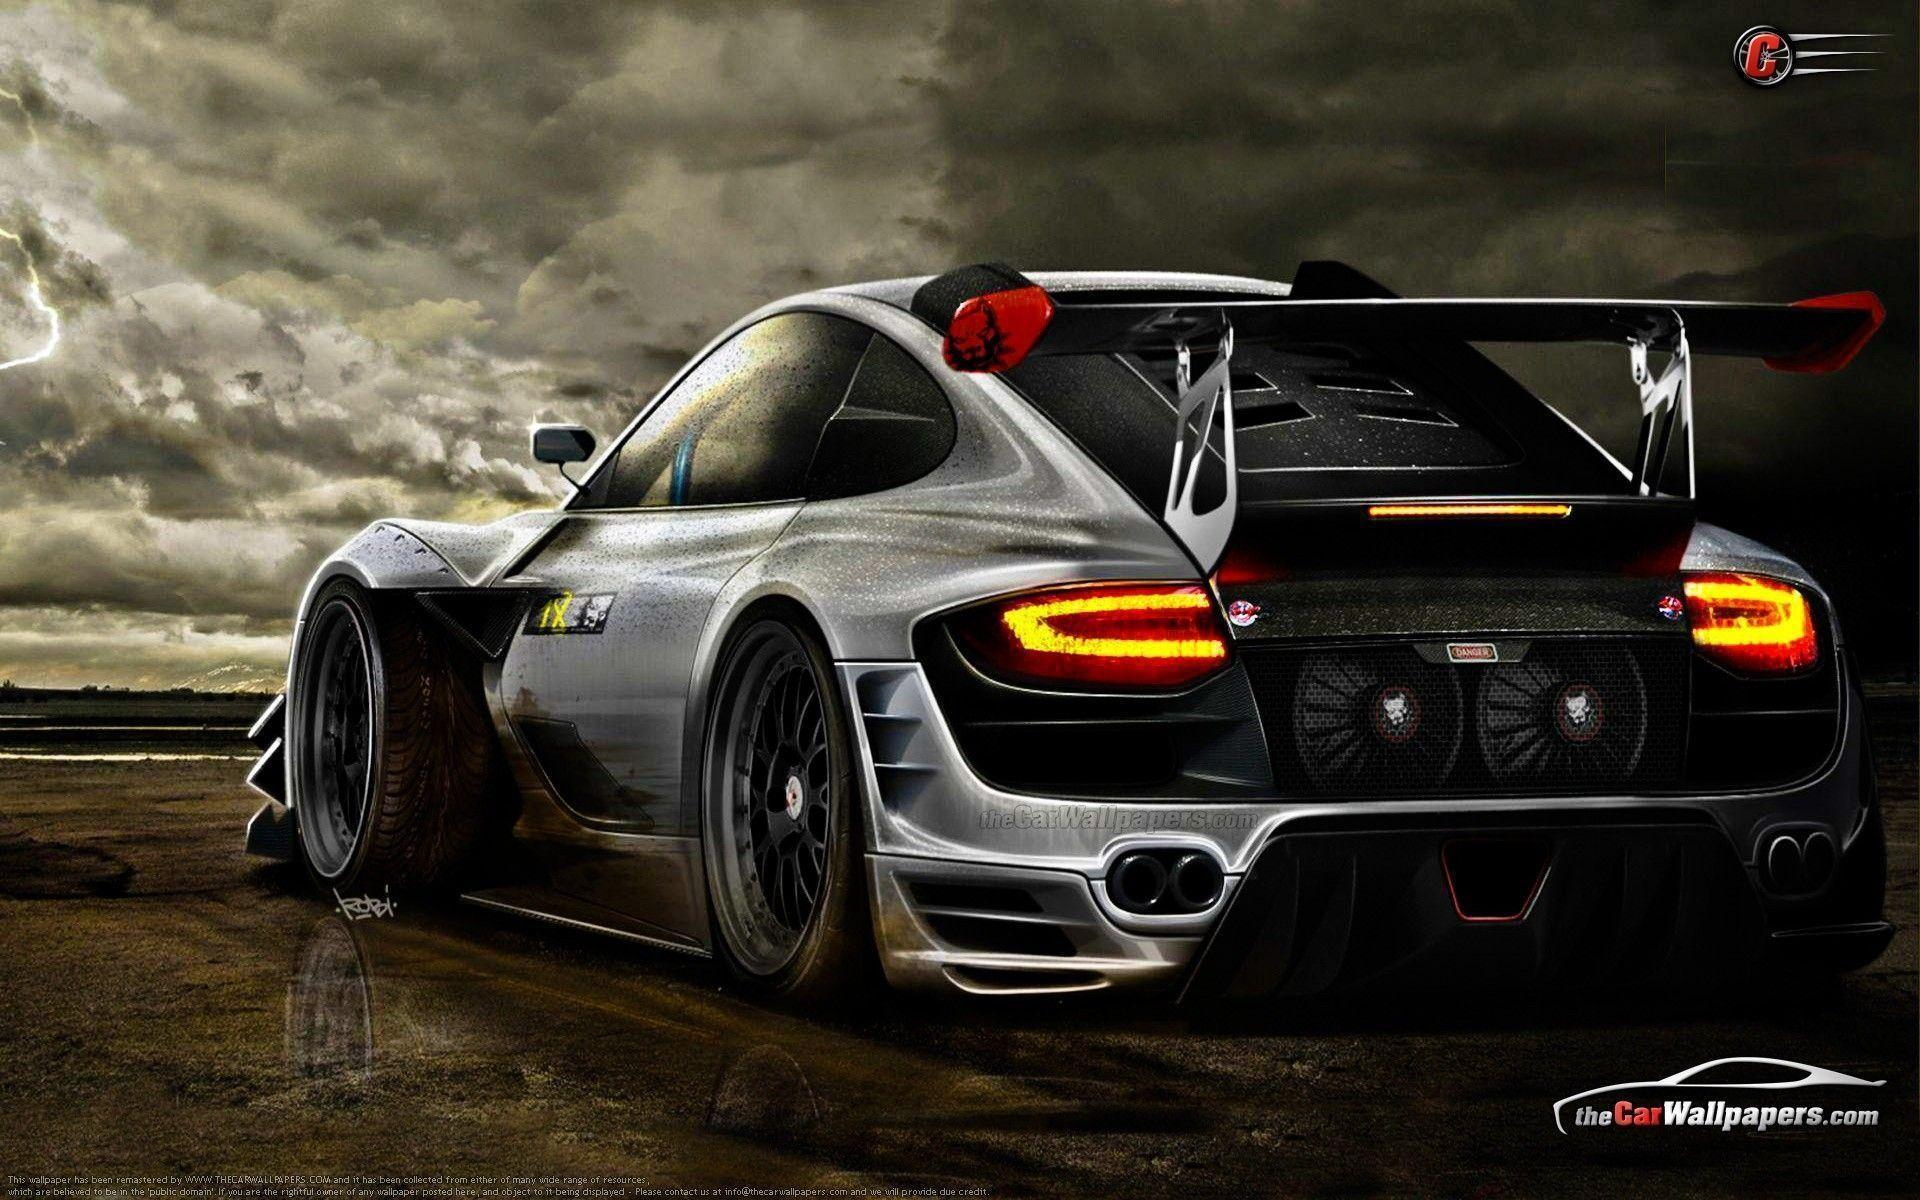 Porsche  Wallpaper Hdwallpapers